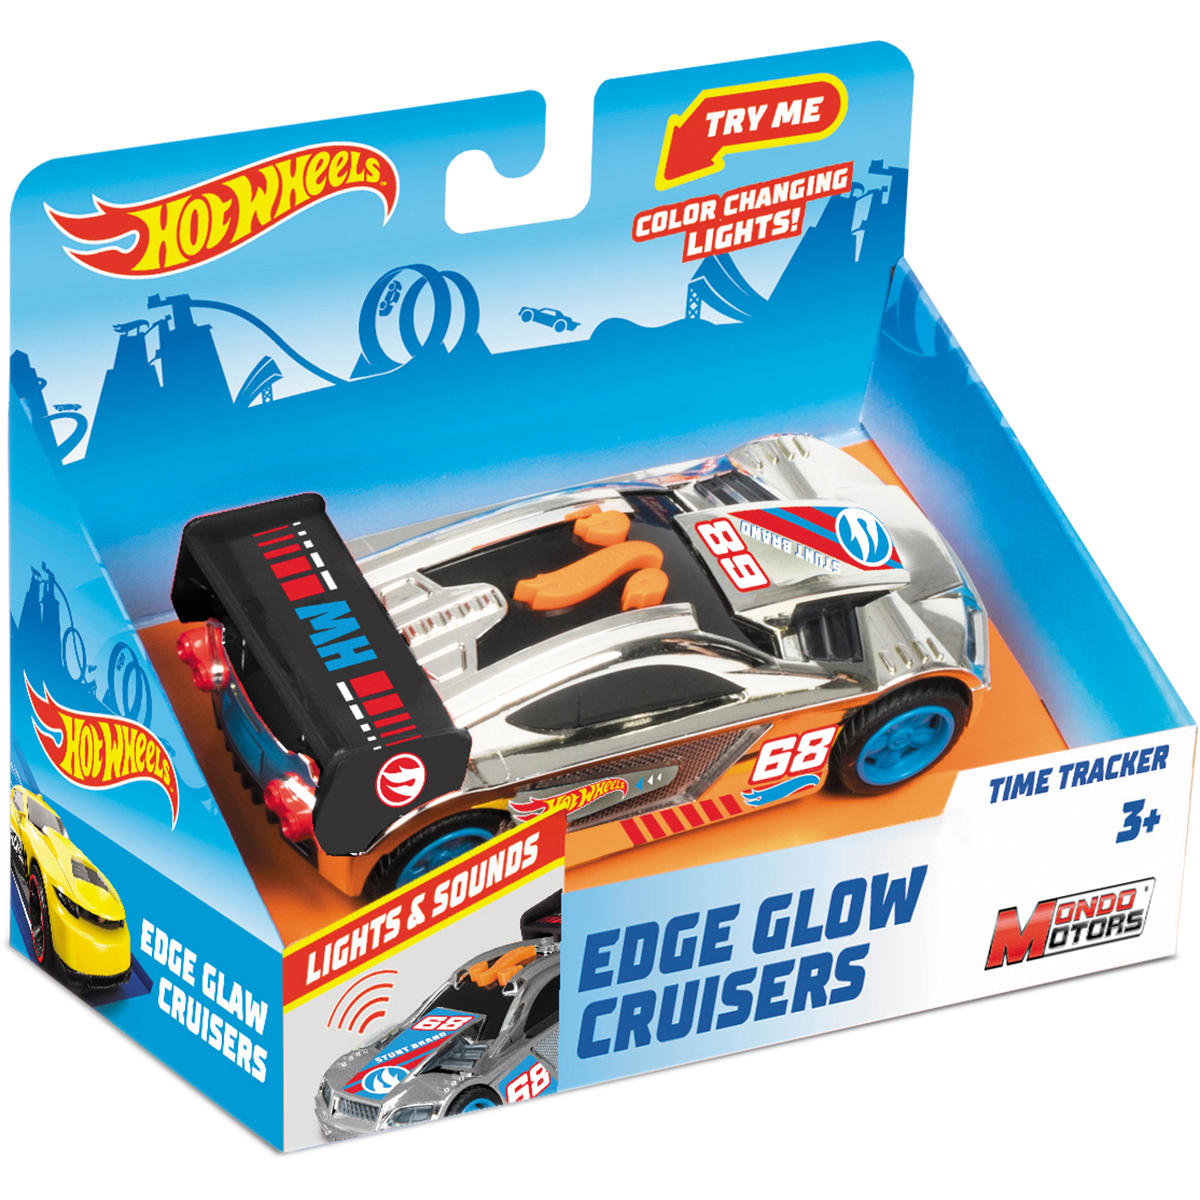 Masinuta cu lumini si sunete Hot Wheels, Time Tracker, Gri